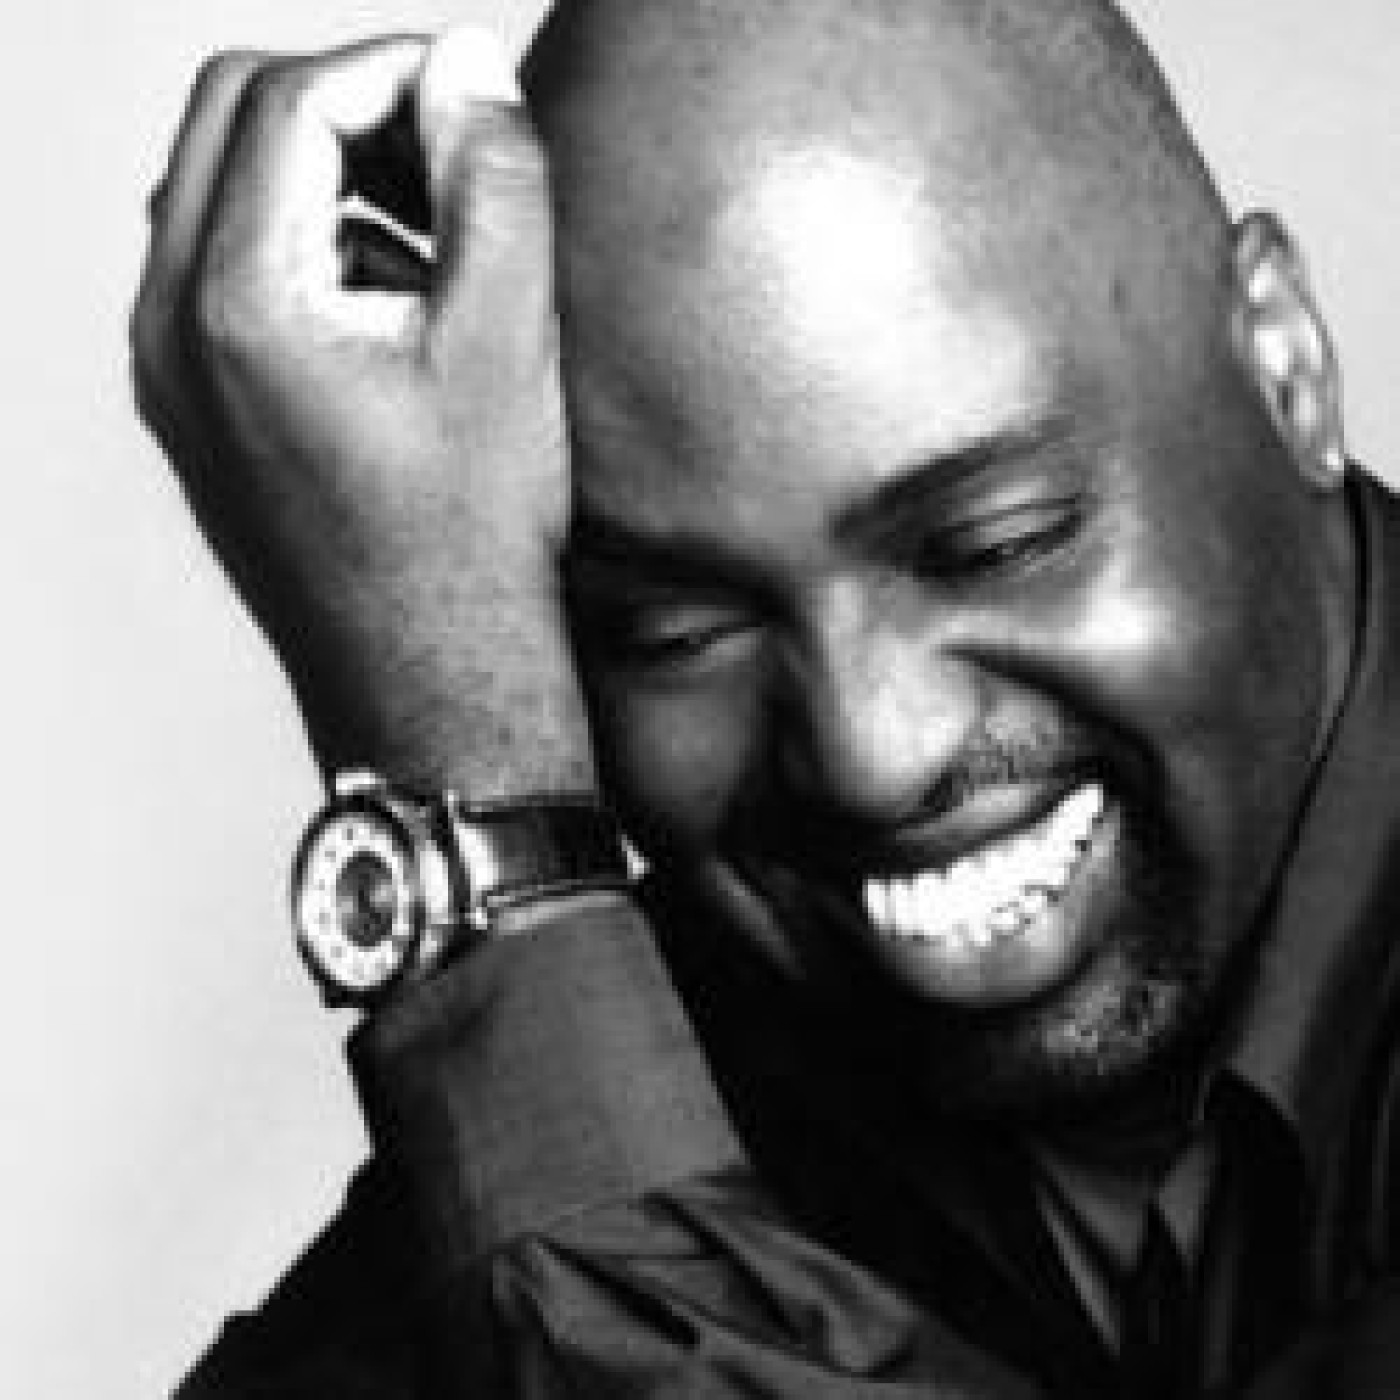 COURS D'ELECTRO FRANKIE KNUCKLES